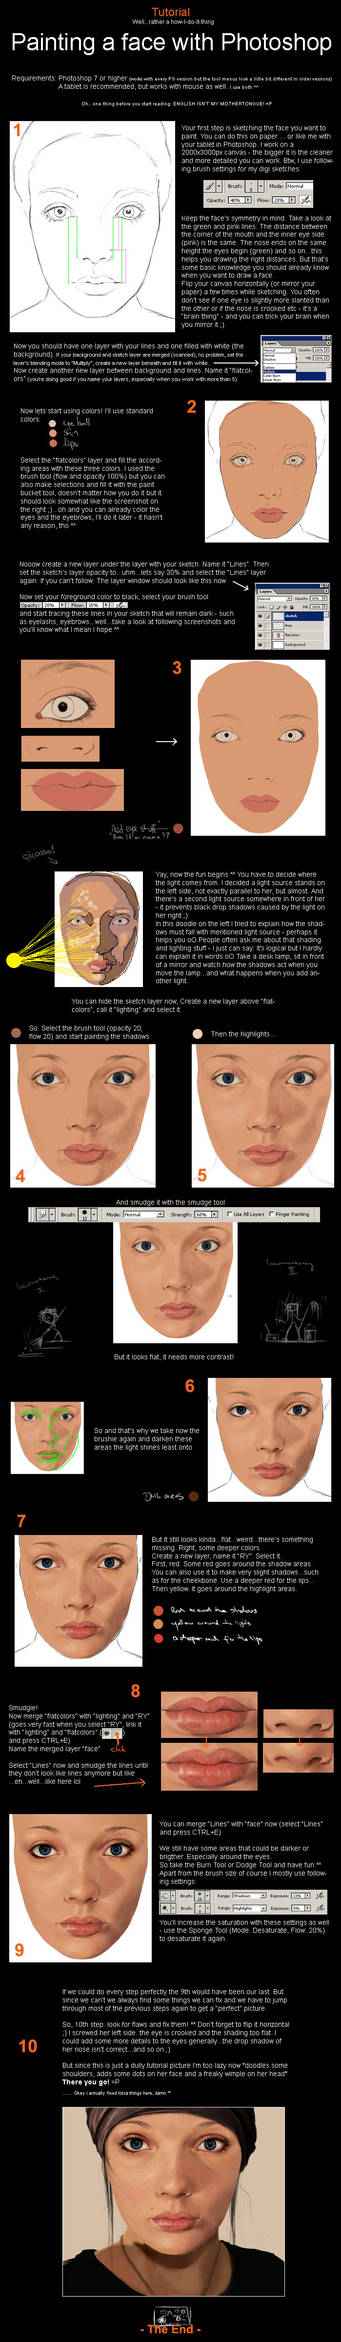 Photoshop - Painting a face